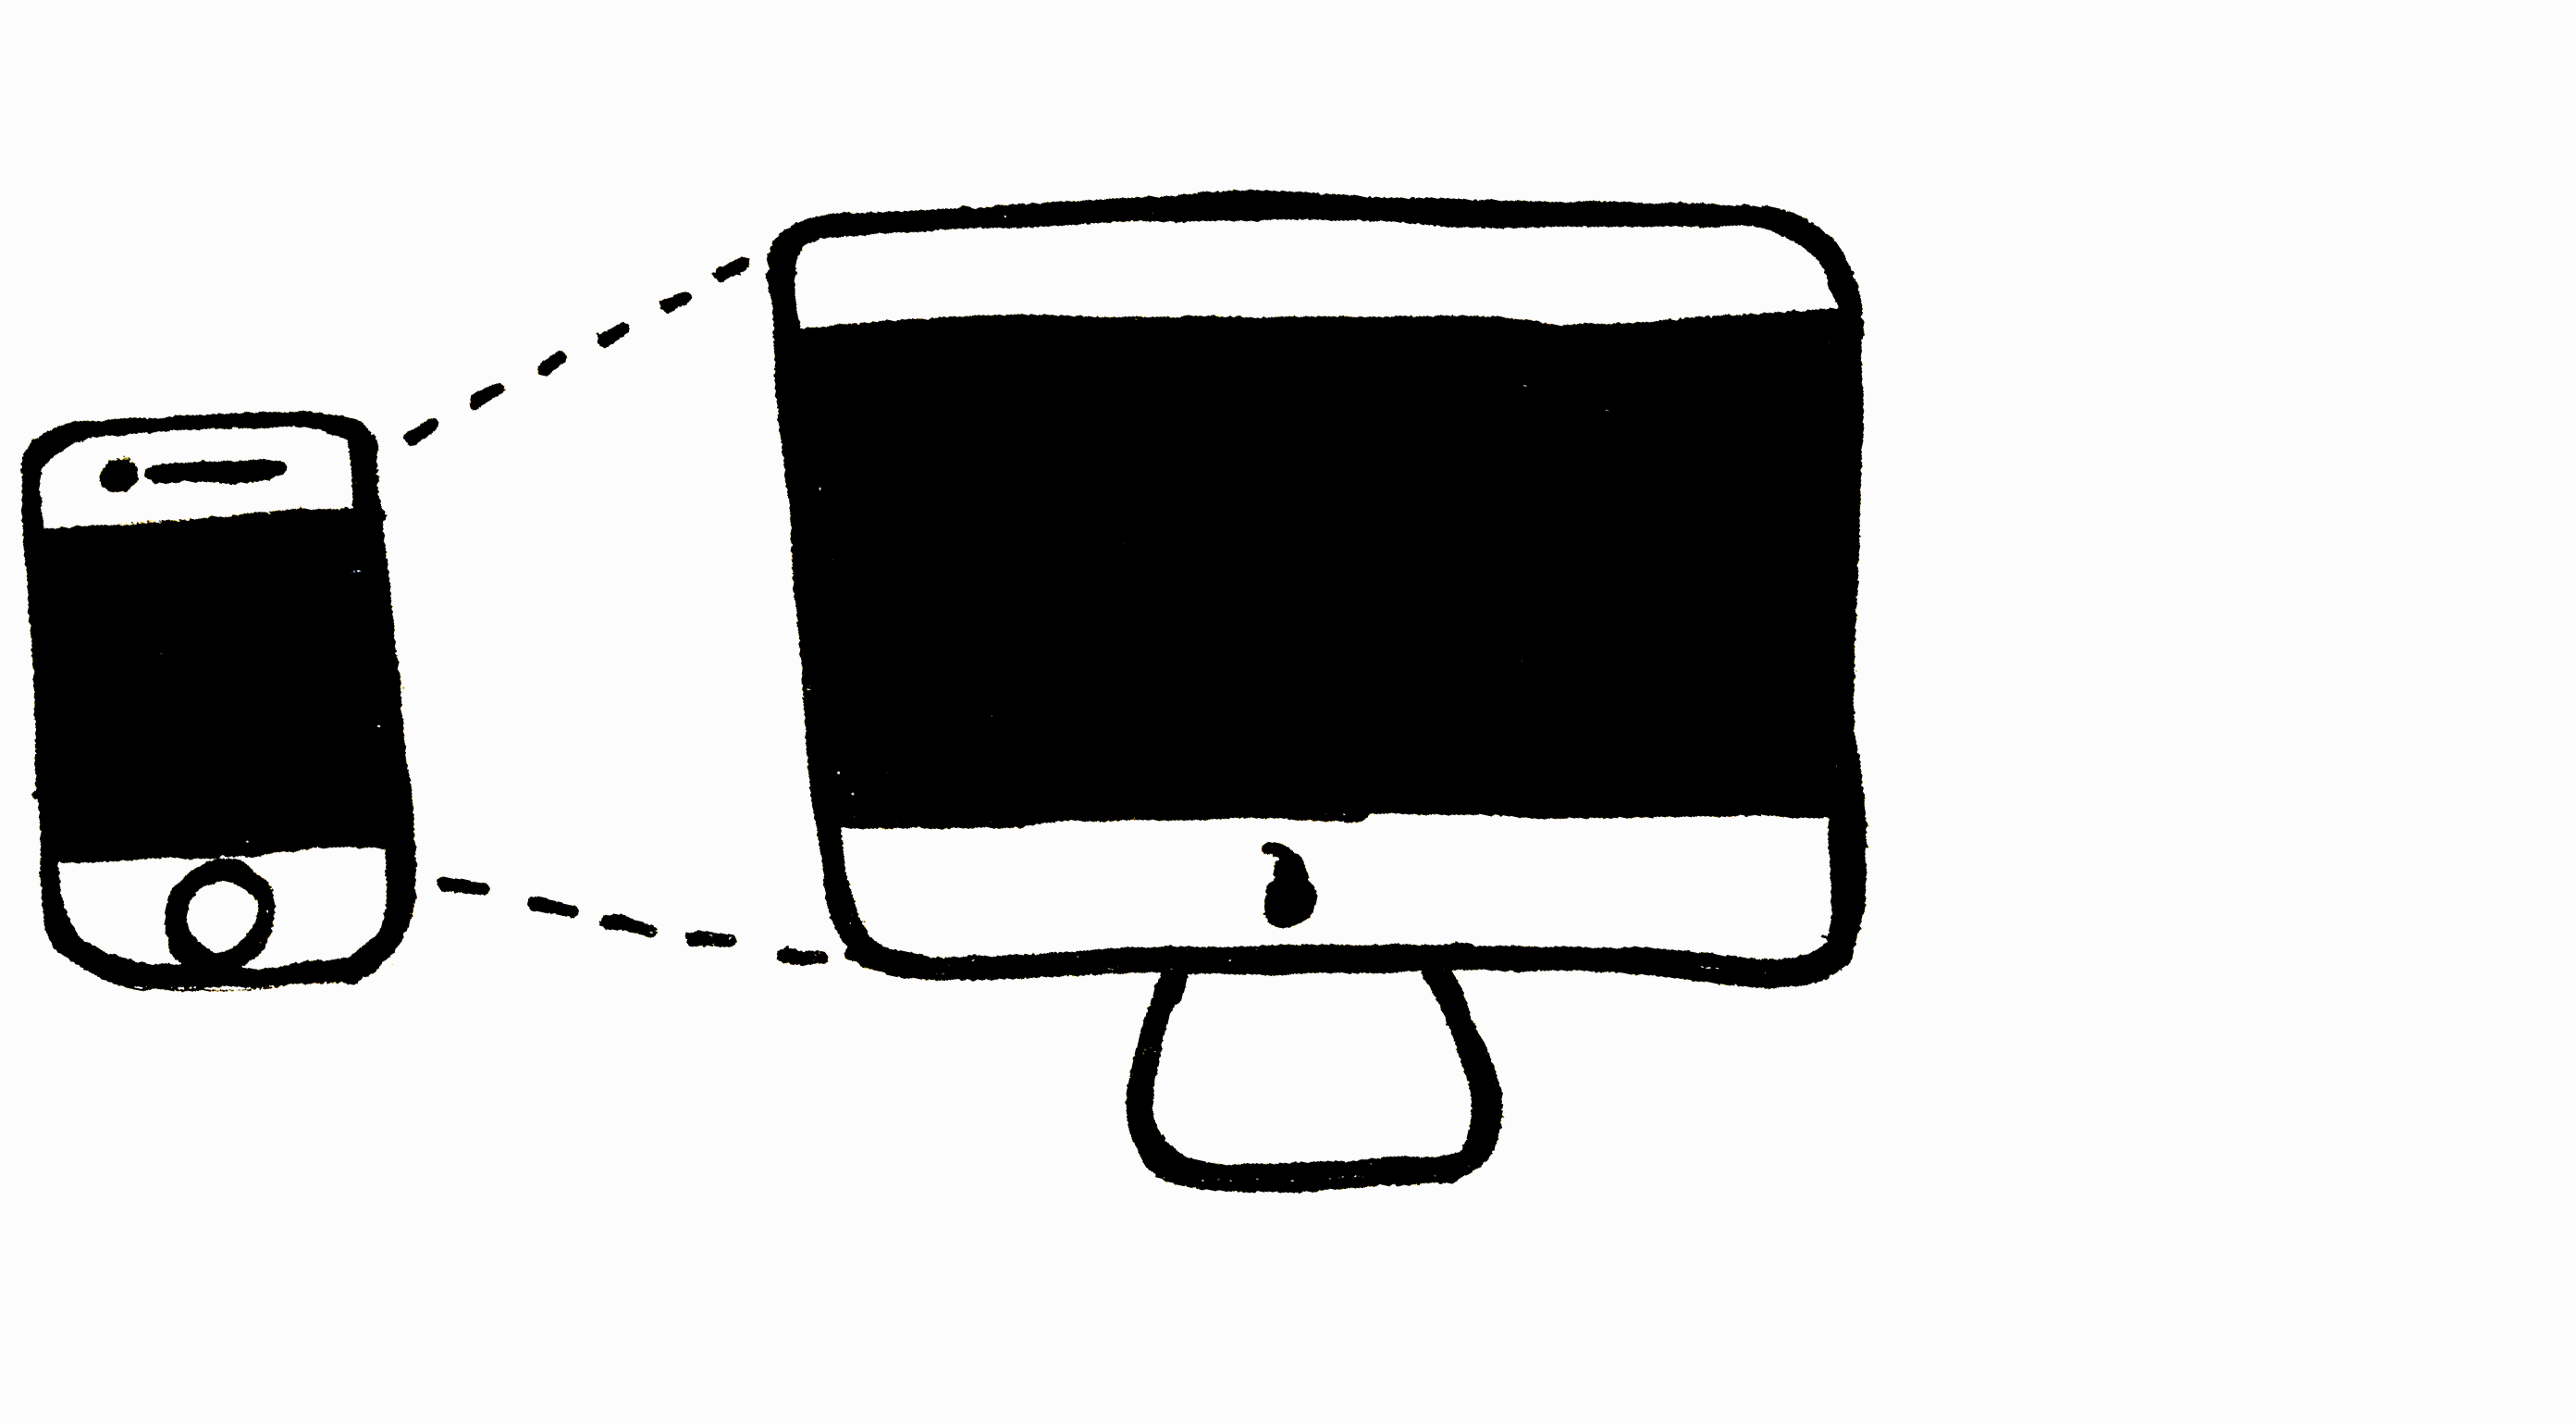 An illustration of a smartphone next to a desktop computer.